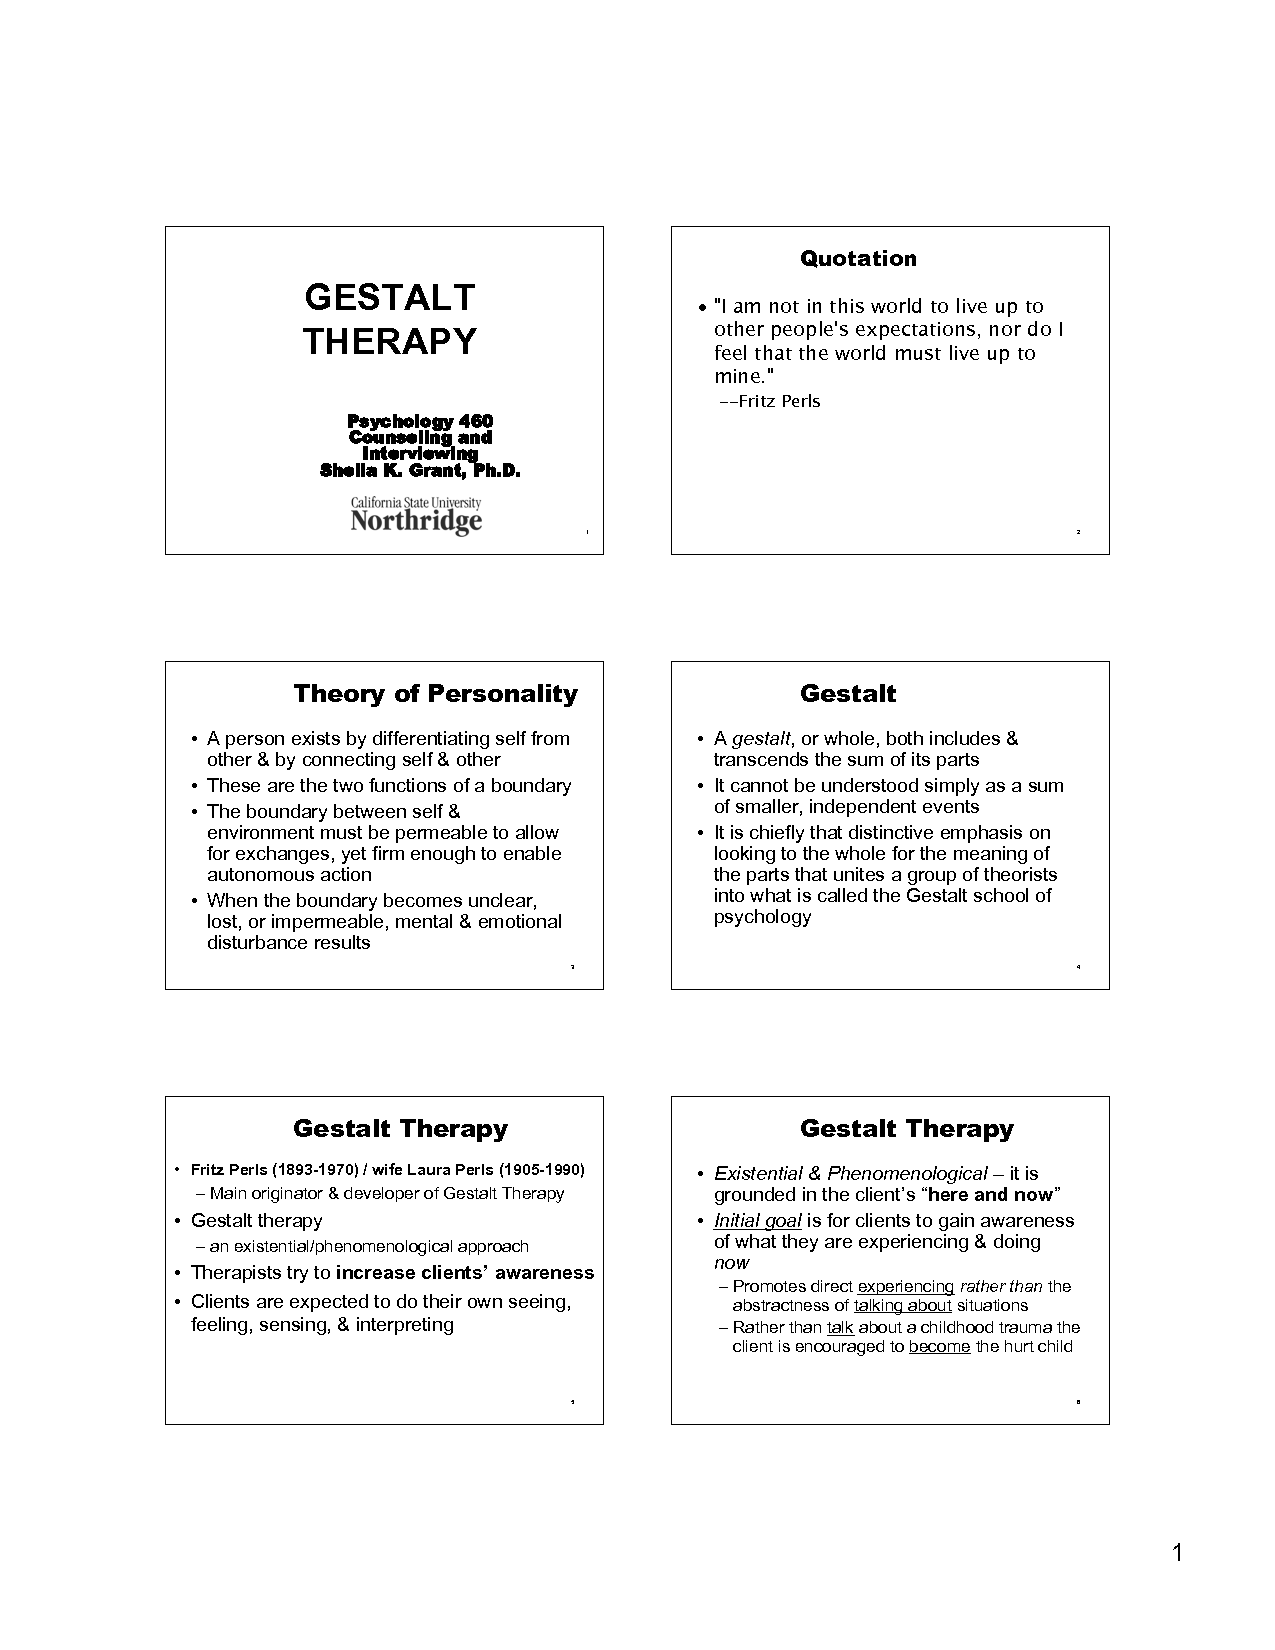 Gestalt Therapy in Psychological Practice